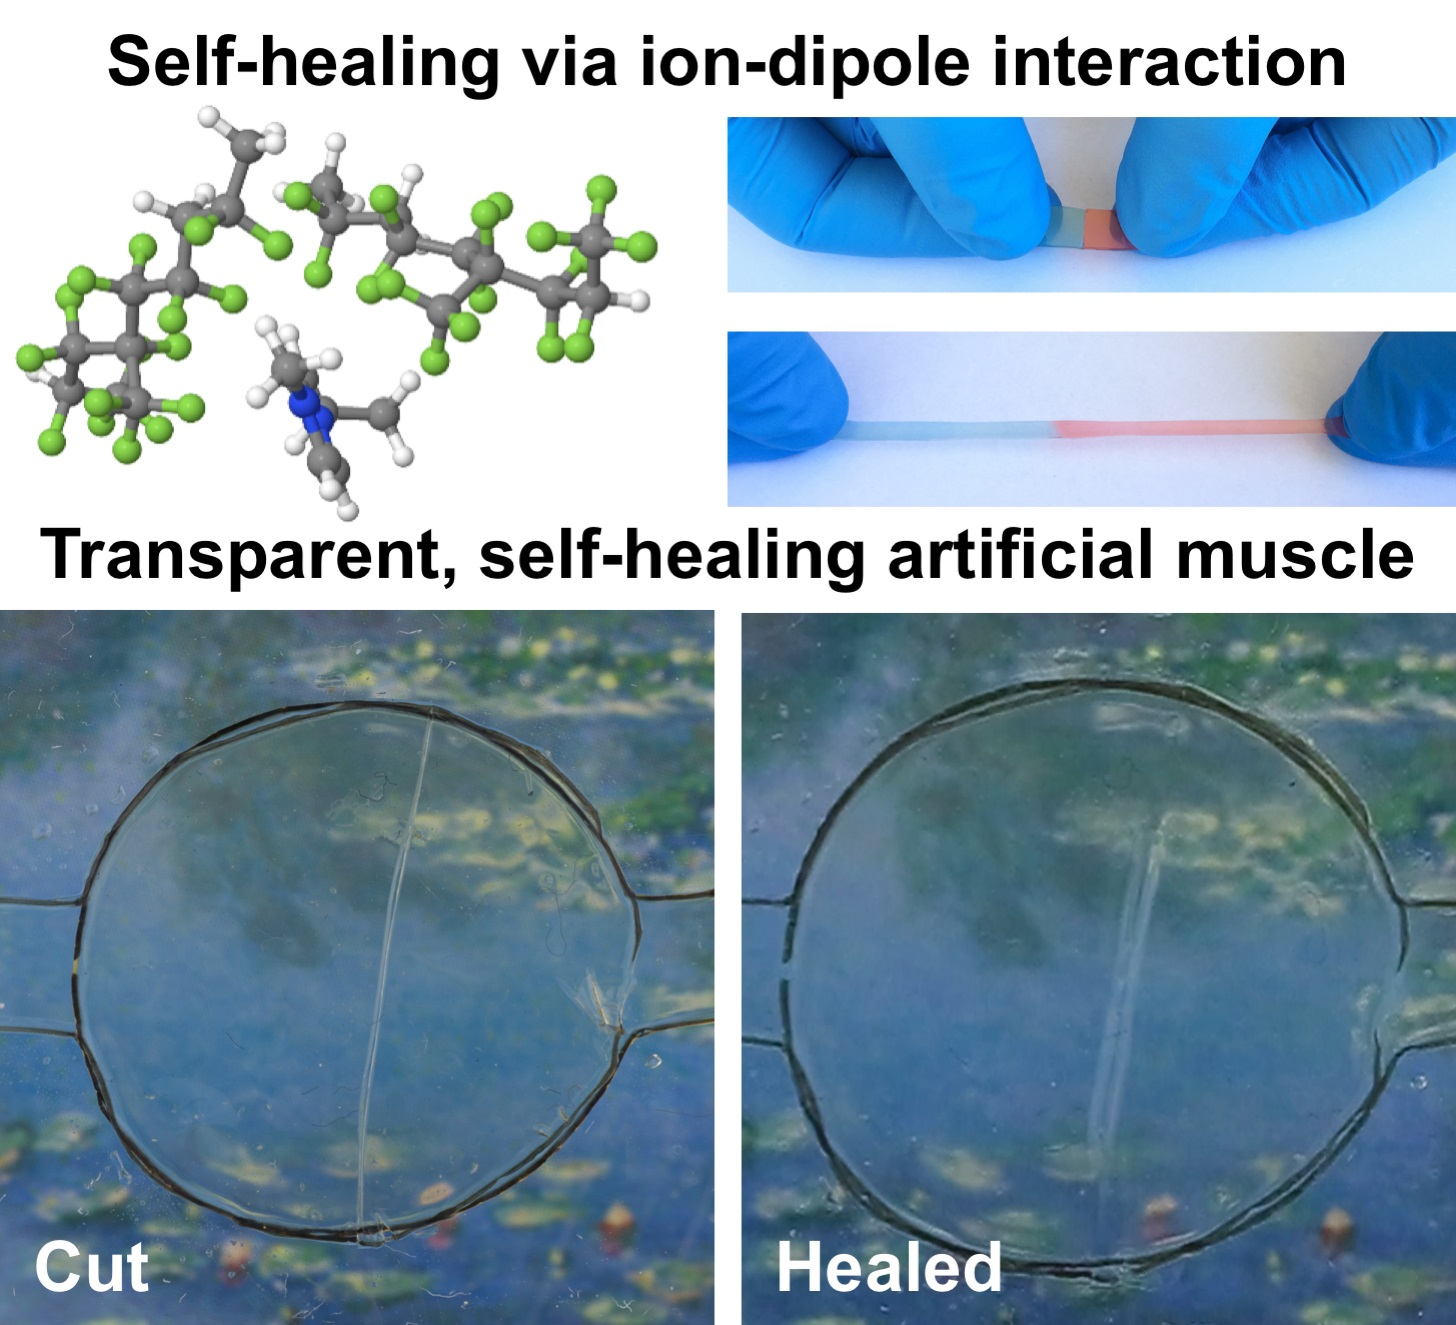 Wolverine-inspired transparent material is self-healing